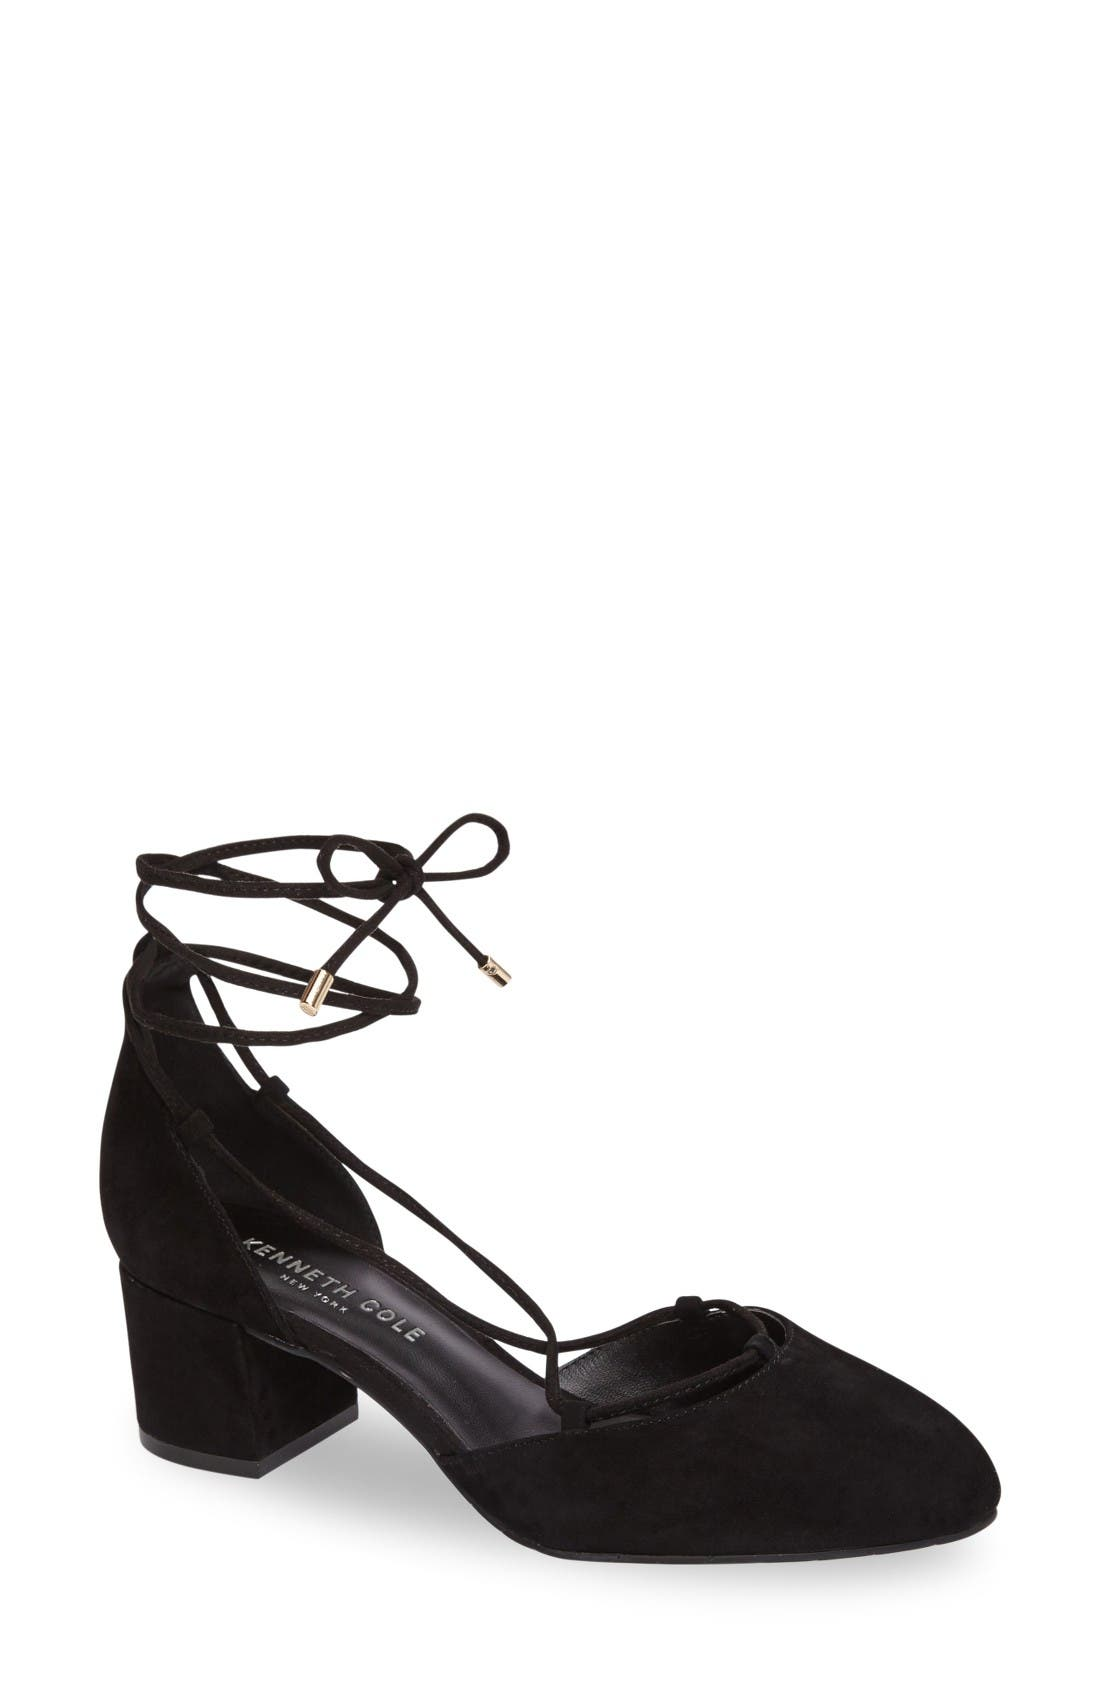 KENNETH COLE NEW YORK Toniann Lace-Up Pump